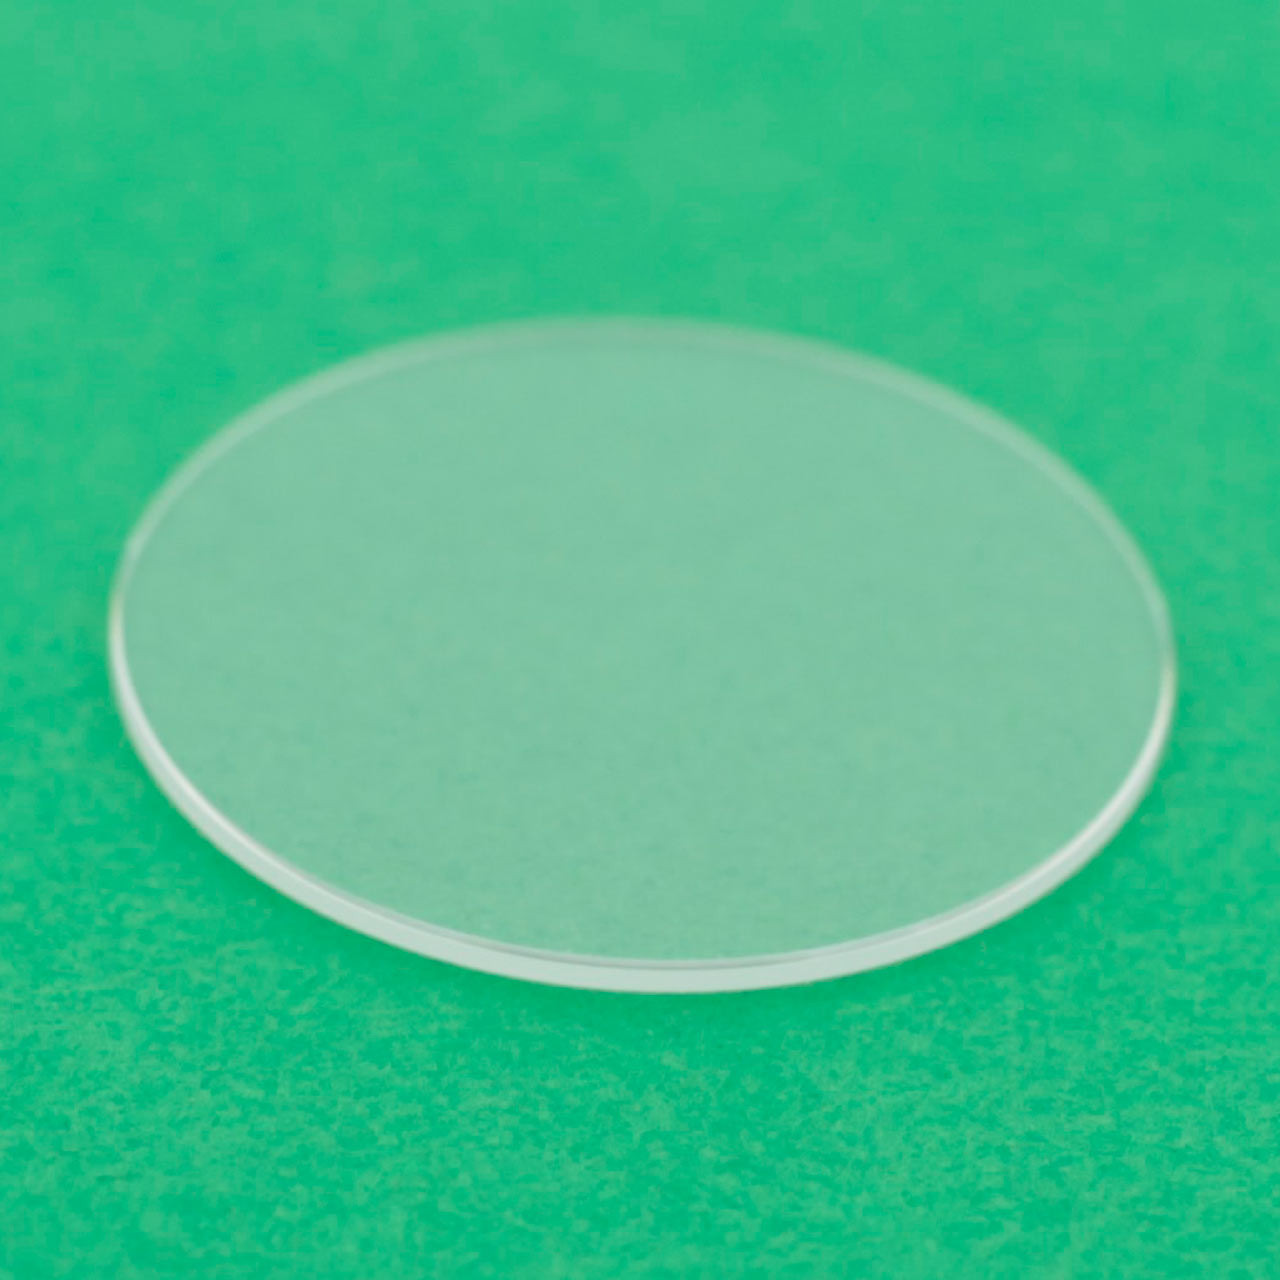 Sapphire Round Watch Crystal 1mm Thick | Replacement Watch Parts